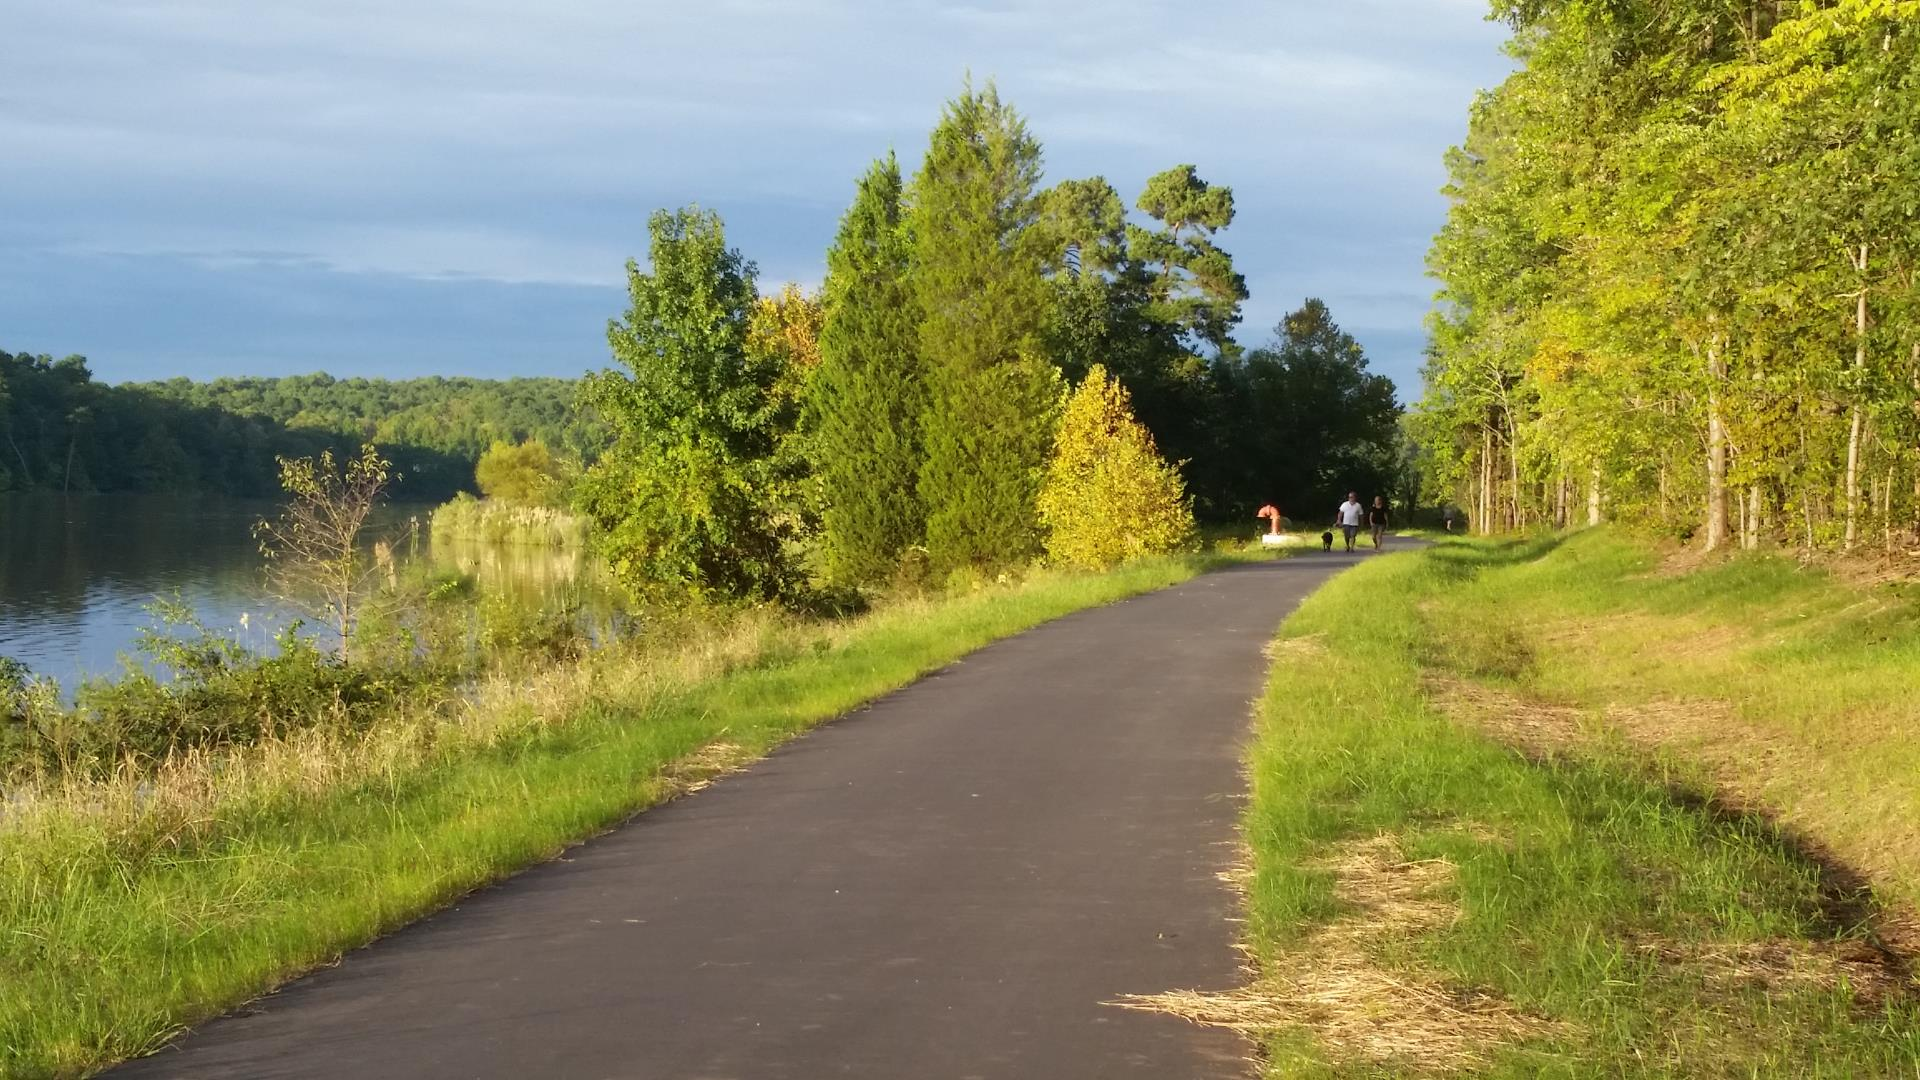 Crabtree Creek Greenway